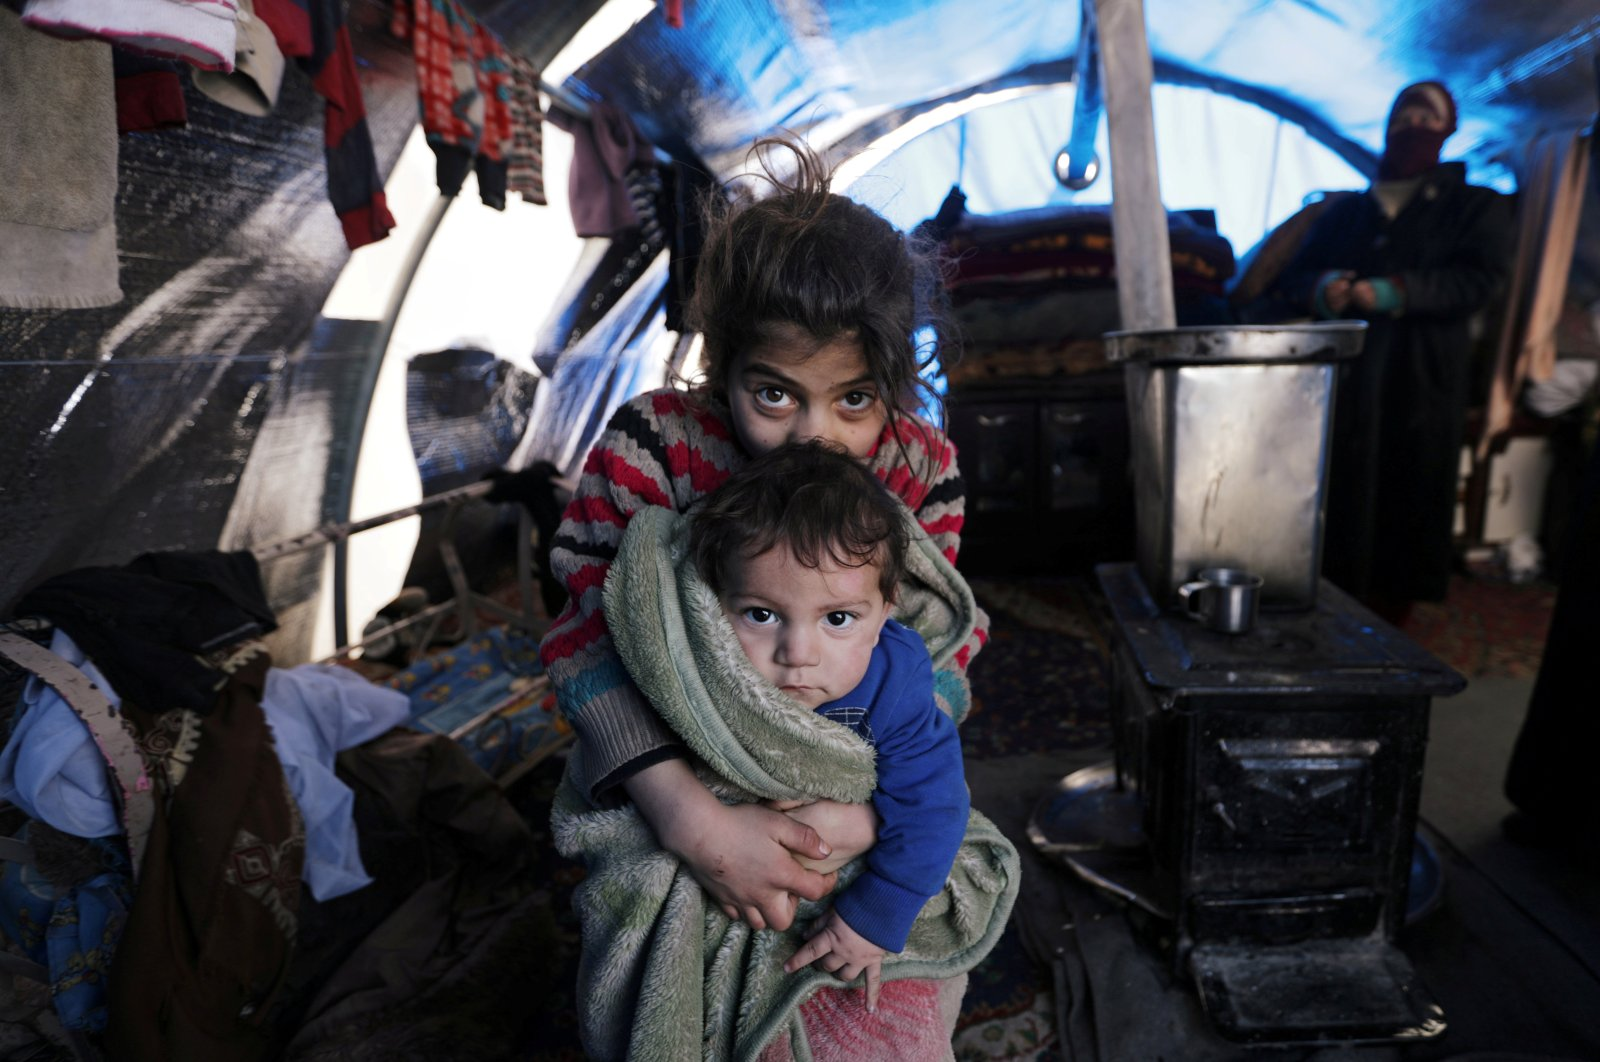 Internally displaced children who fled from the western Aleppo countryside sit inside a tent in Afrin, northwestern Syria, Feb. 14, 2020. (Reuters Photo)